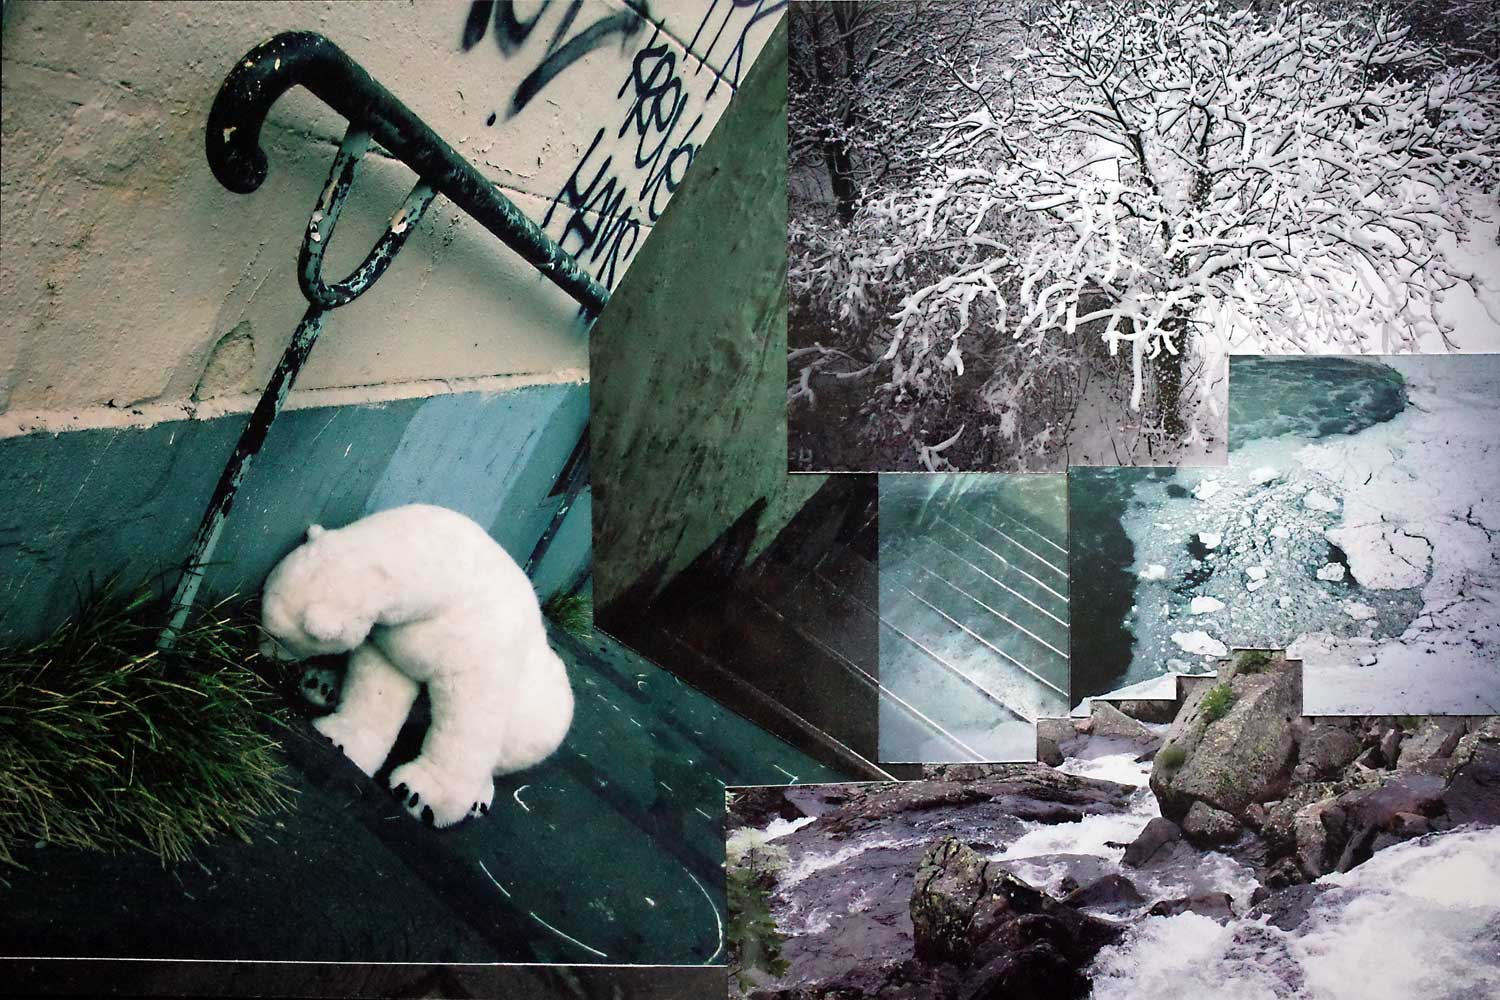 Impasse de l'ours - EmPinsan - collage